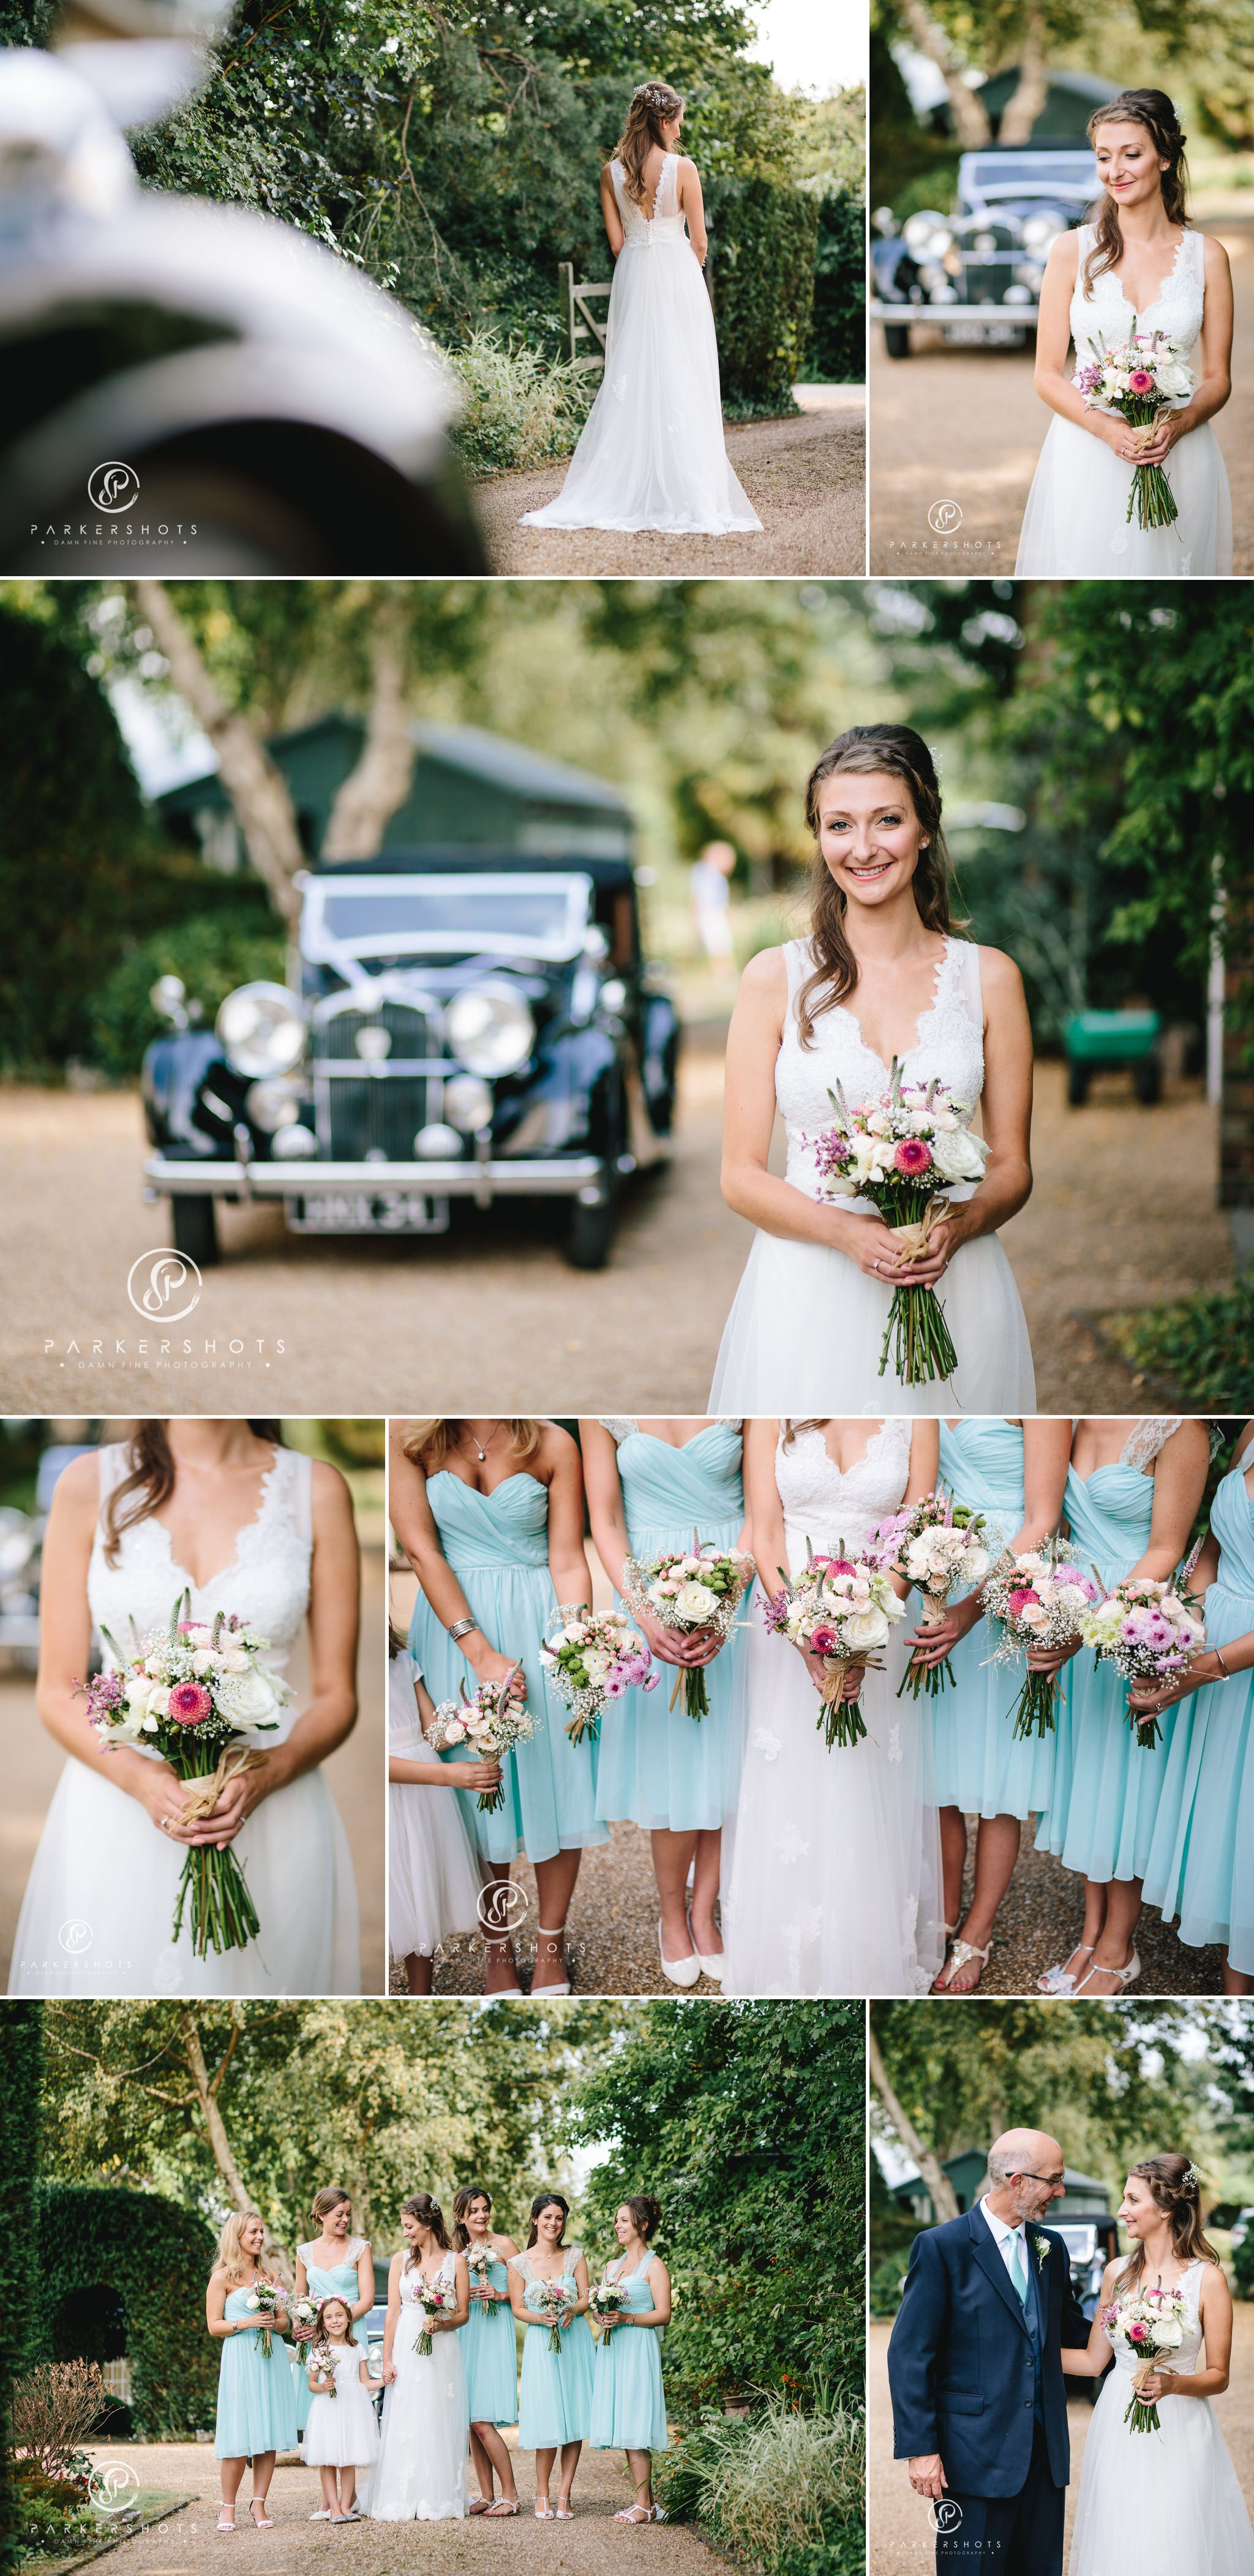 Portrait of bride and car from wedding in Kent